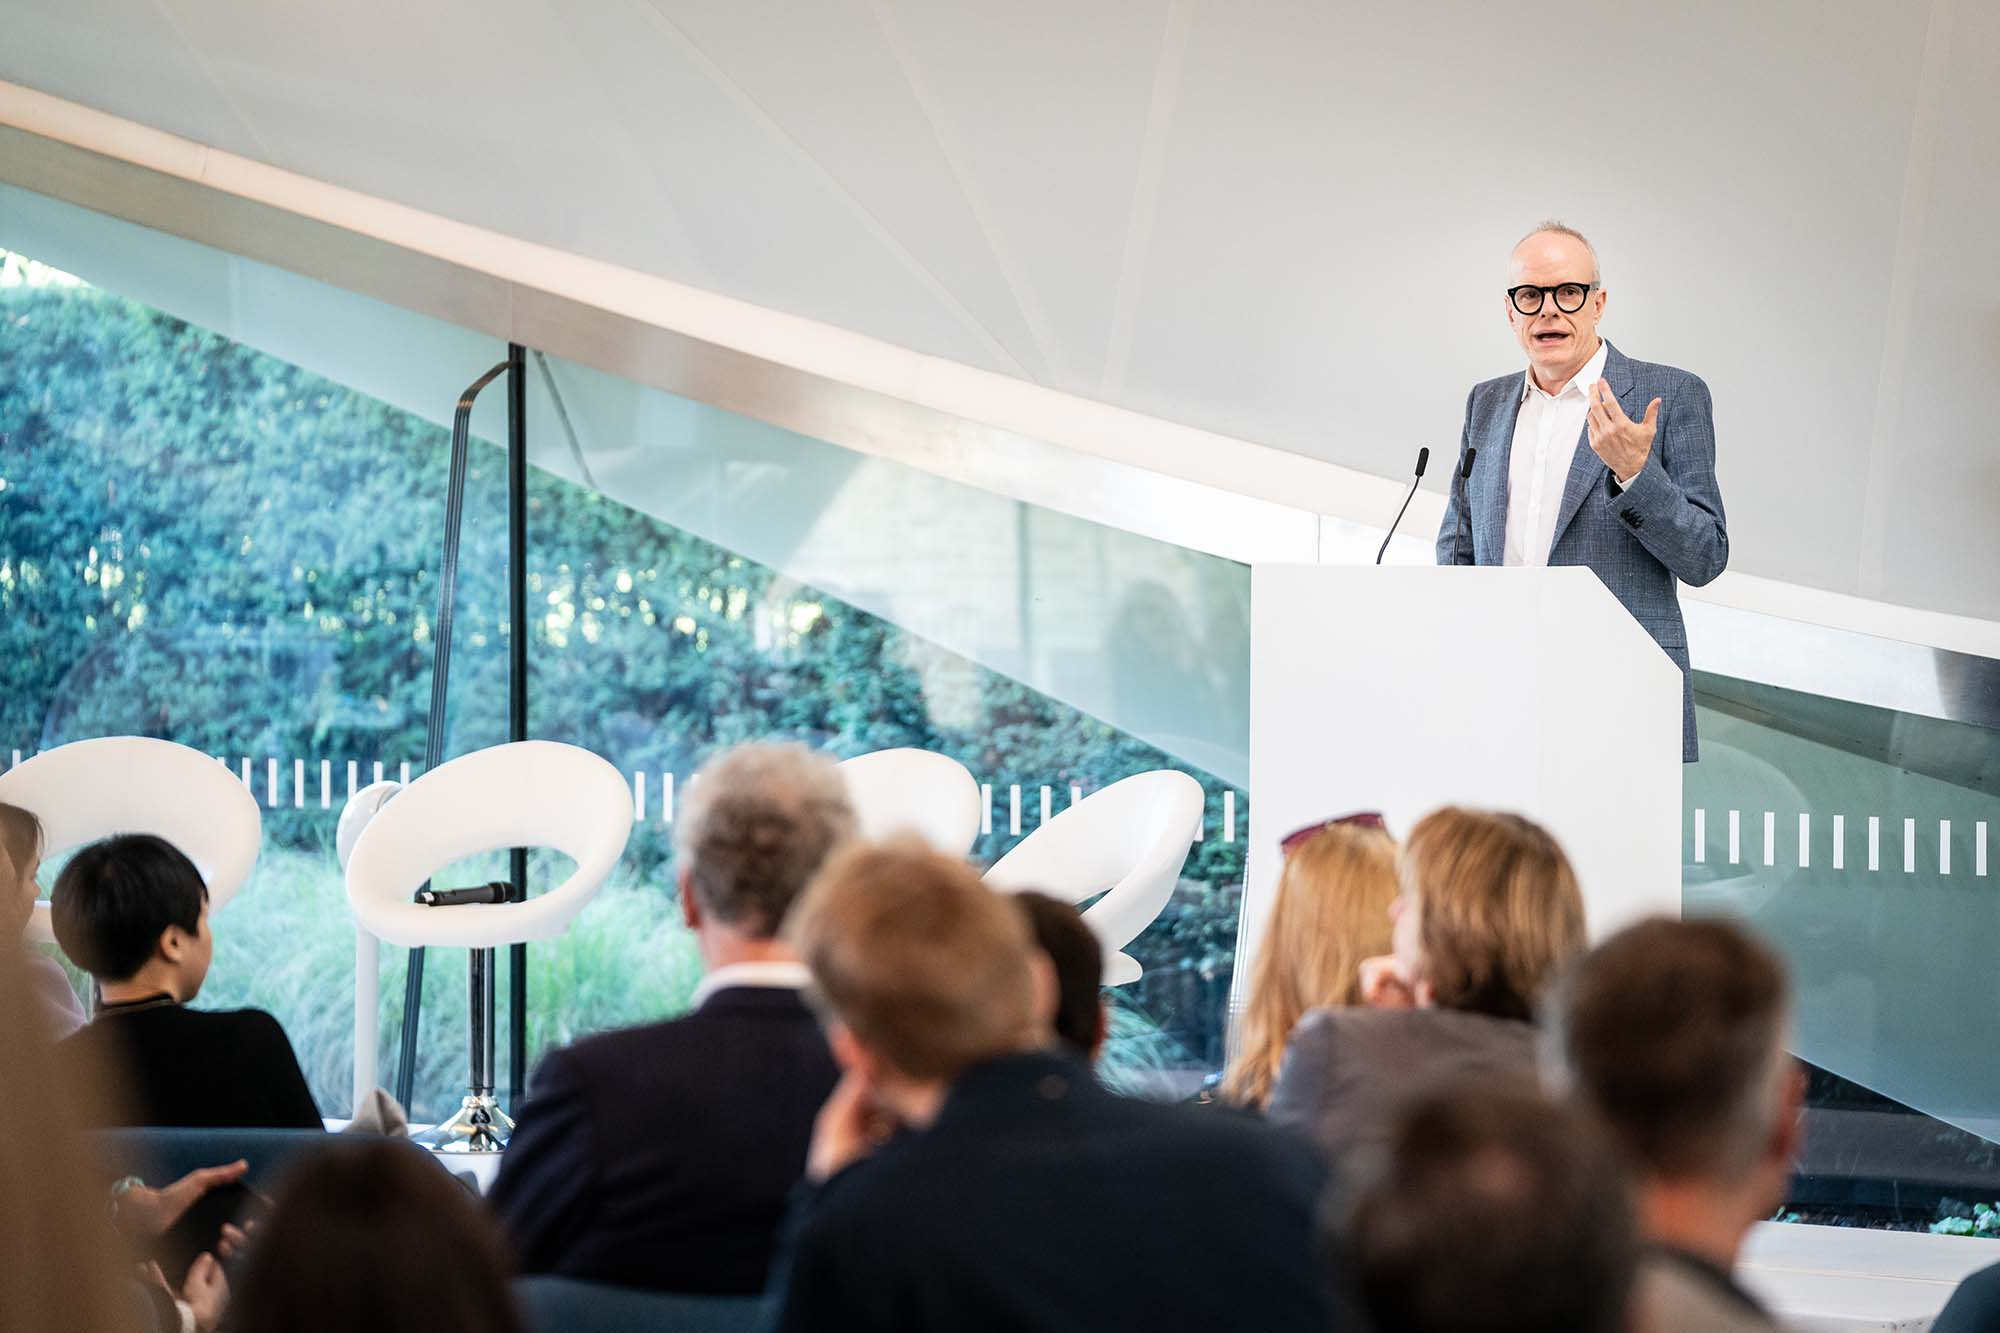 Hans Ulrich Obrist, Artistic Director of Serpentine Galleries speaking during Serpentine Galleries' Frieze Breakfast